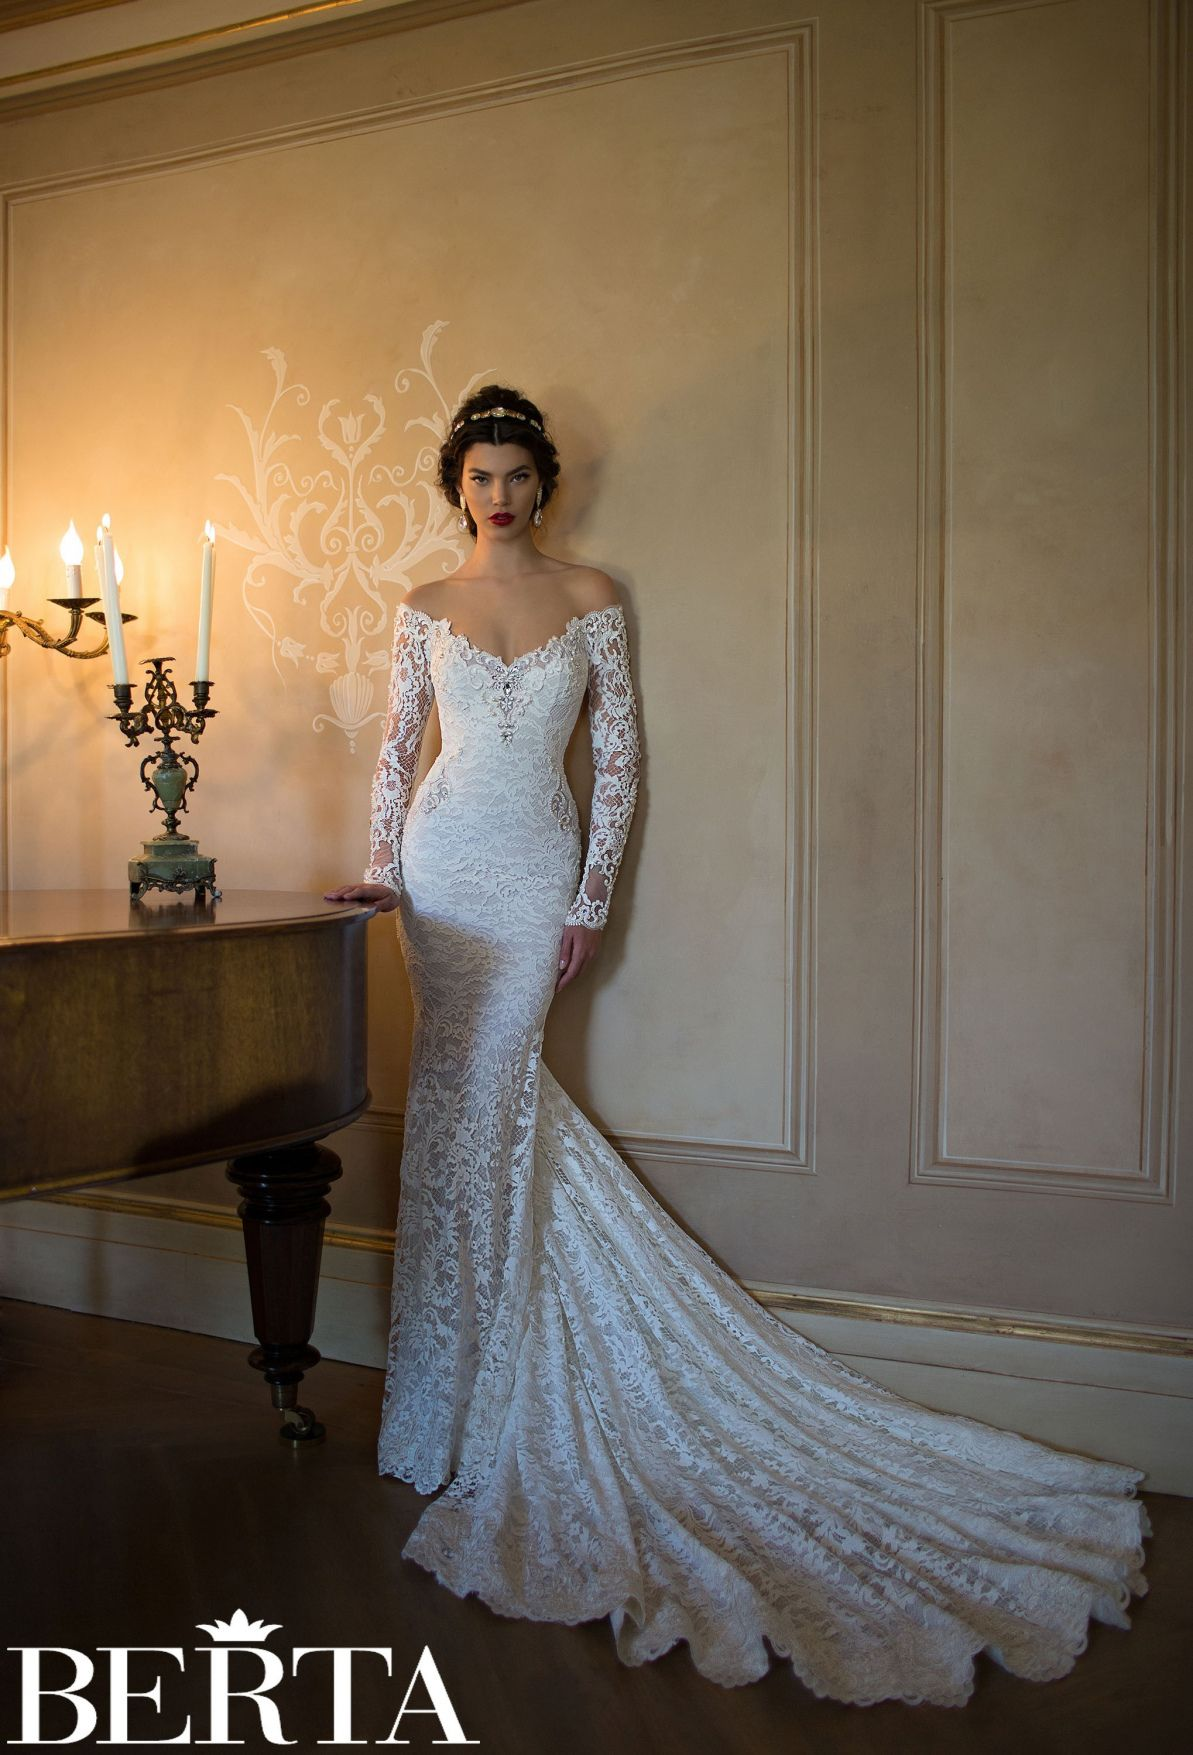 50 Berta Wedding Dress Prices Dresses For Check More At Http